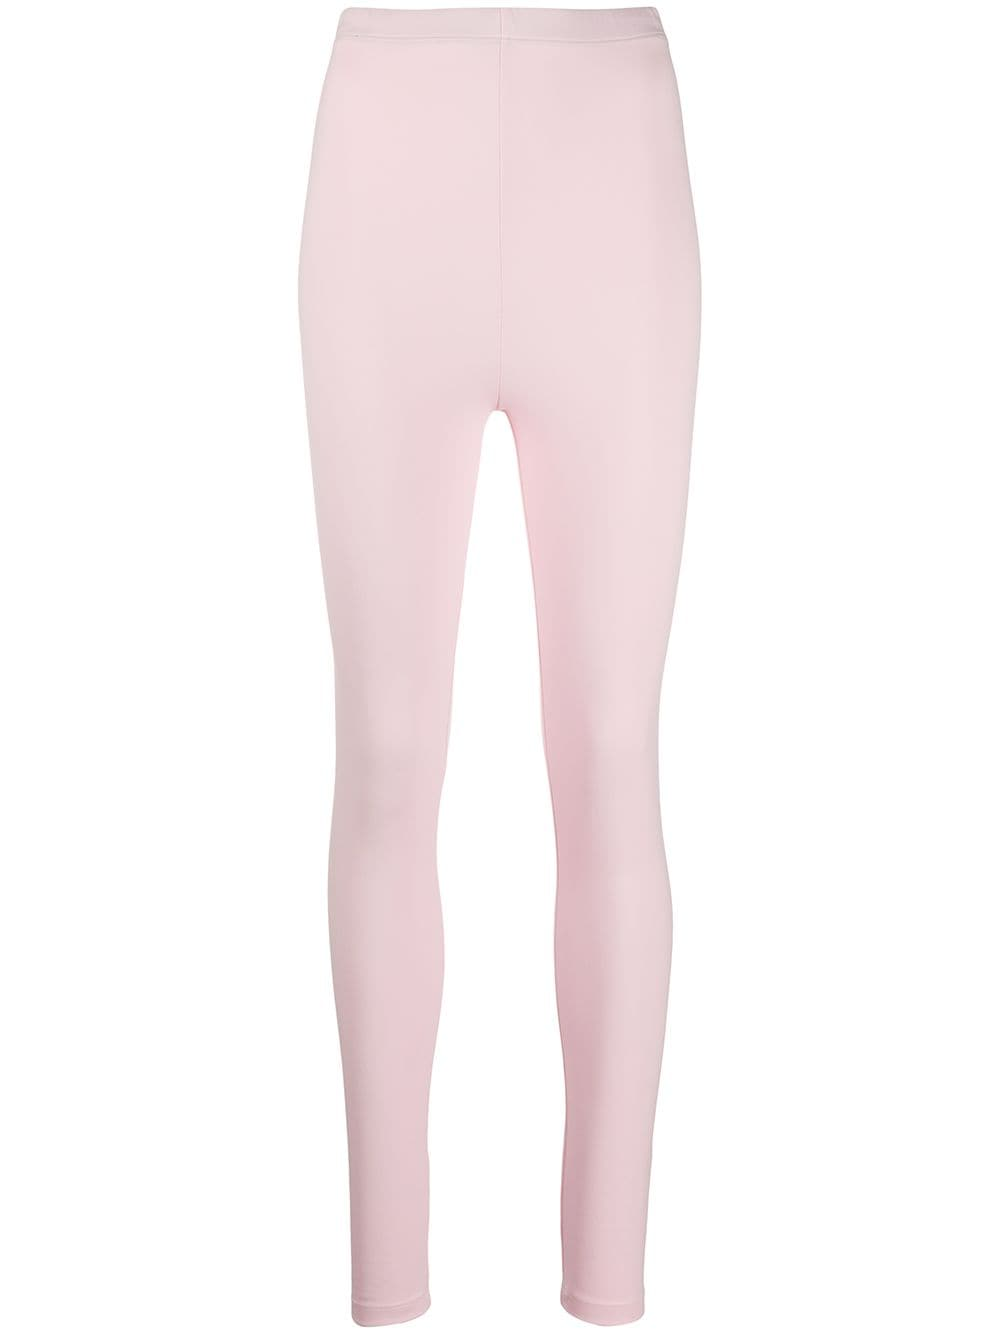 Styland stretch-fit leggings - 40 CRYSTAL ROSE von Styland